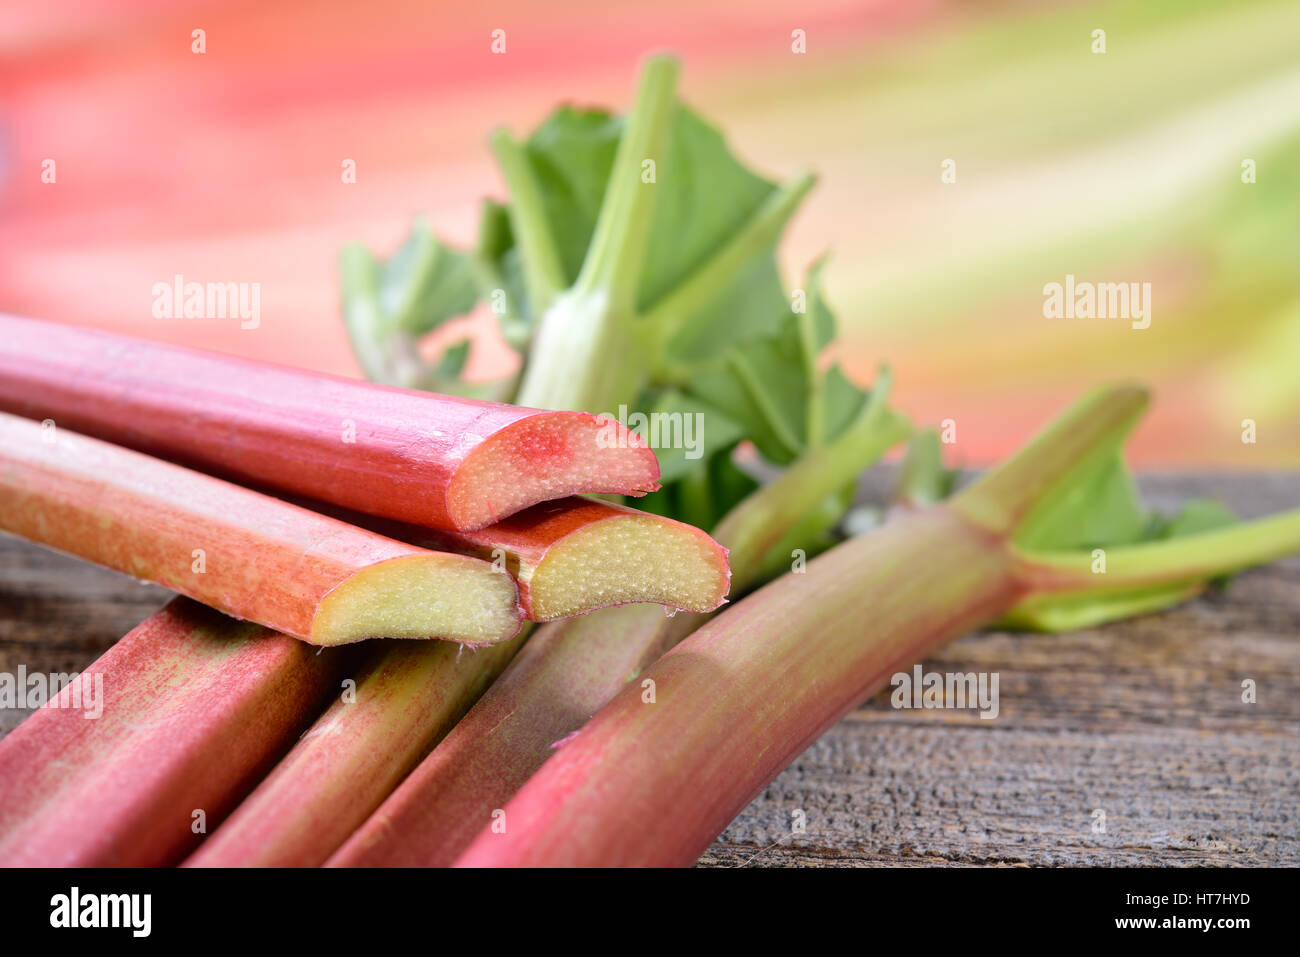 Fresh unpeeled rhubarb on a wooden table, in the background other rhubarb stalks in soft focus - Stock Image